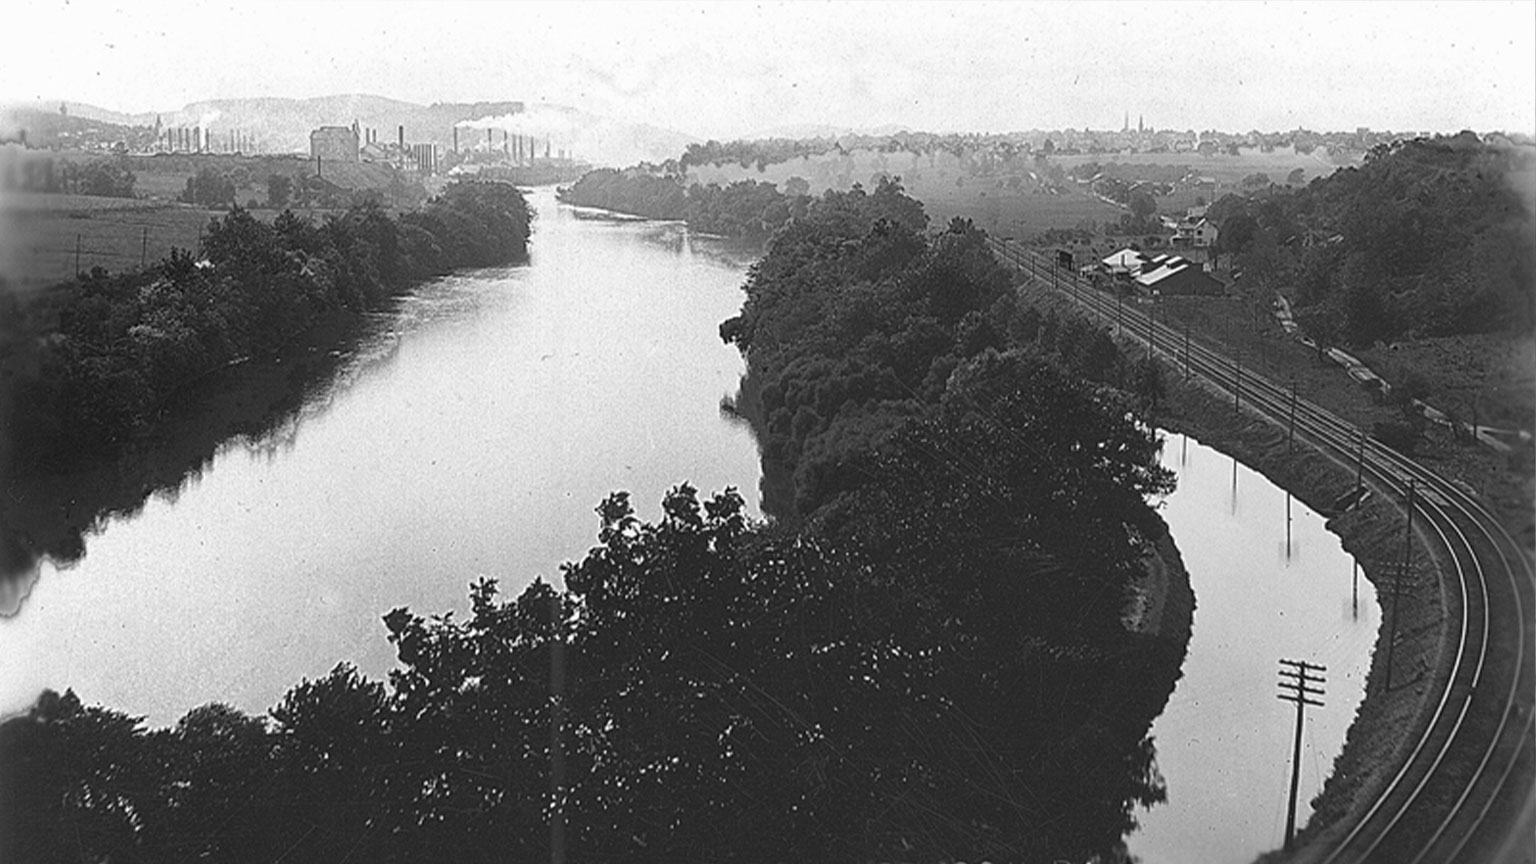 View of canal and river from Freemansburg.